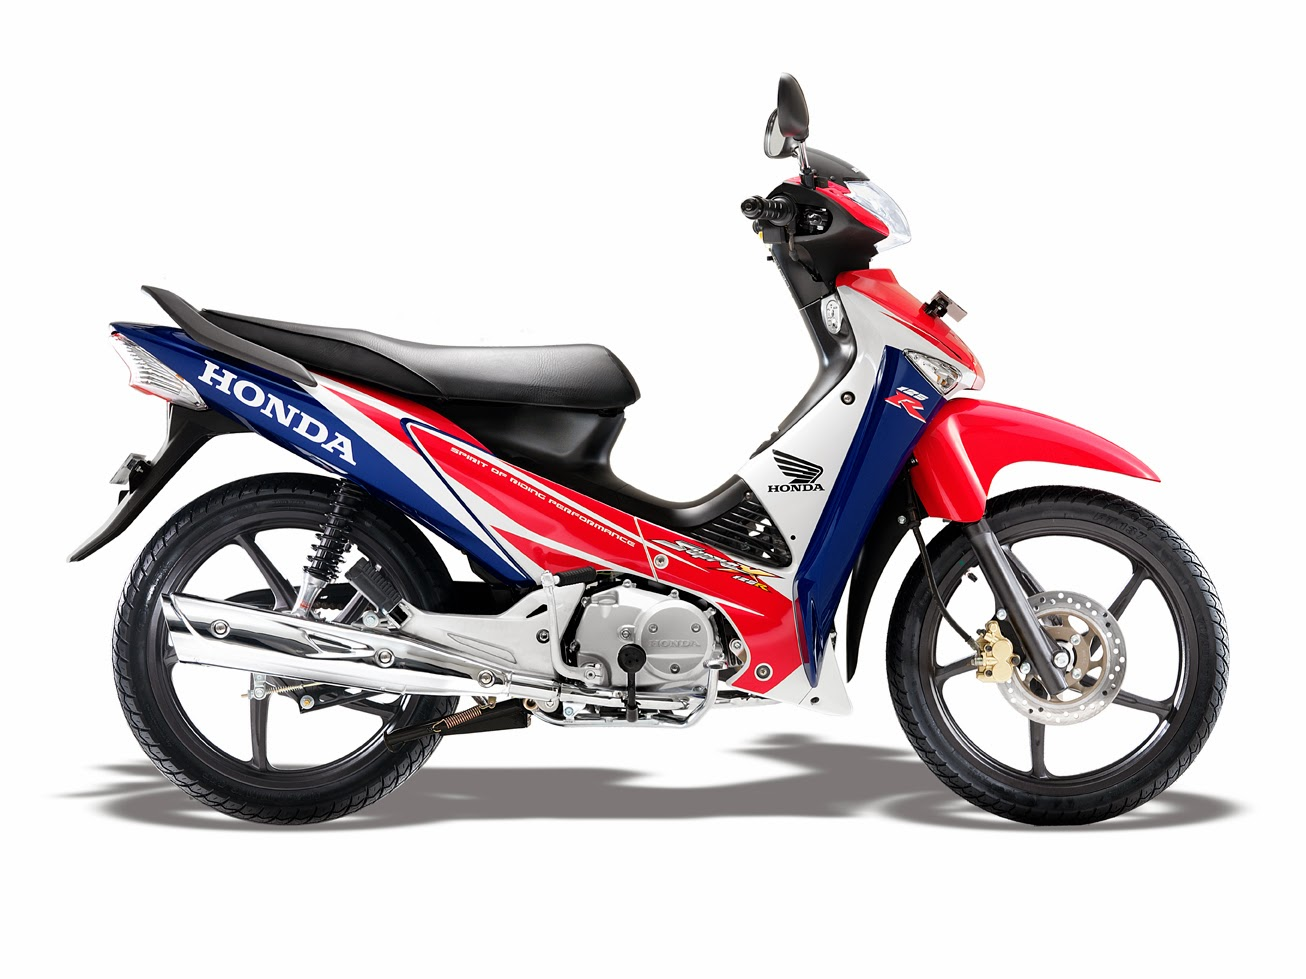 Model Honda New Supra X 125 CW PGM FI Baru Bekas September Oktober